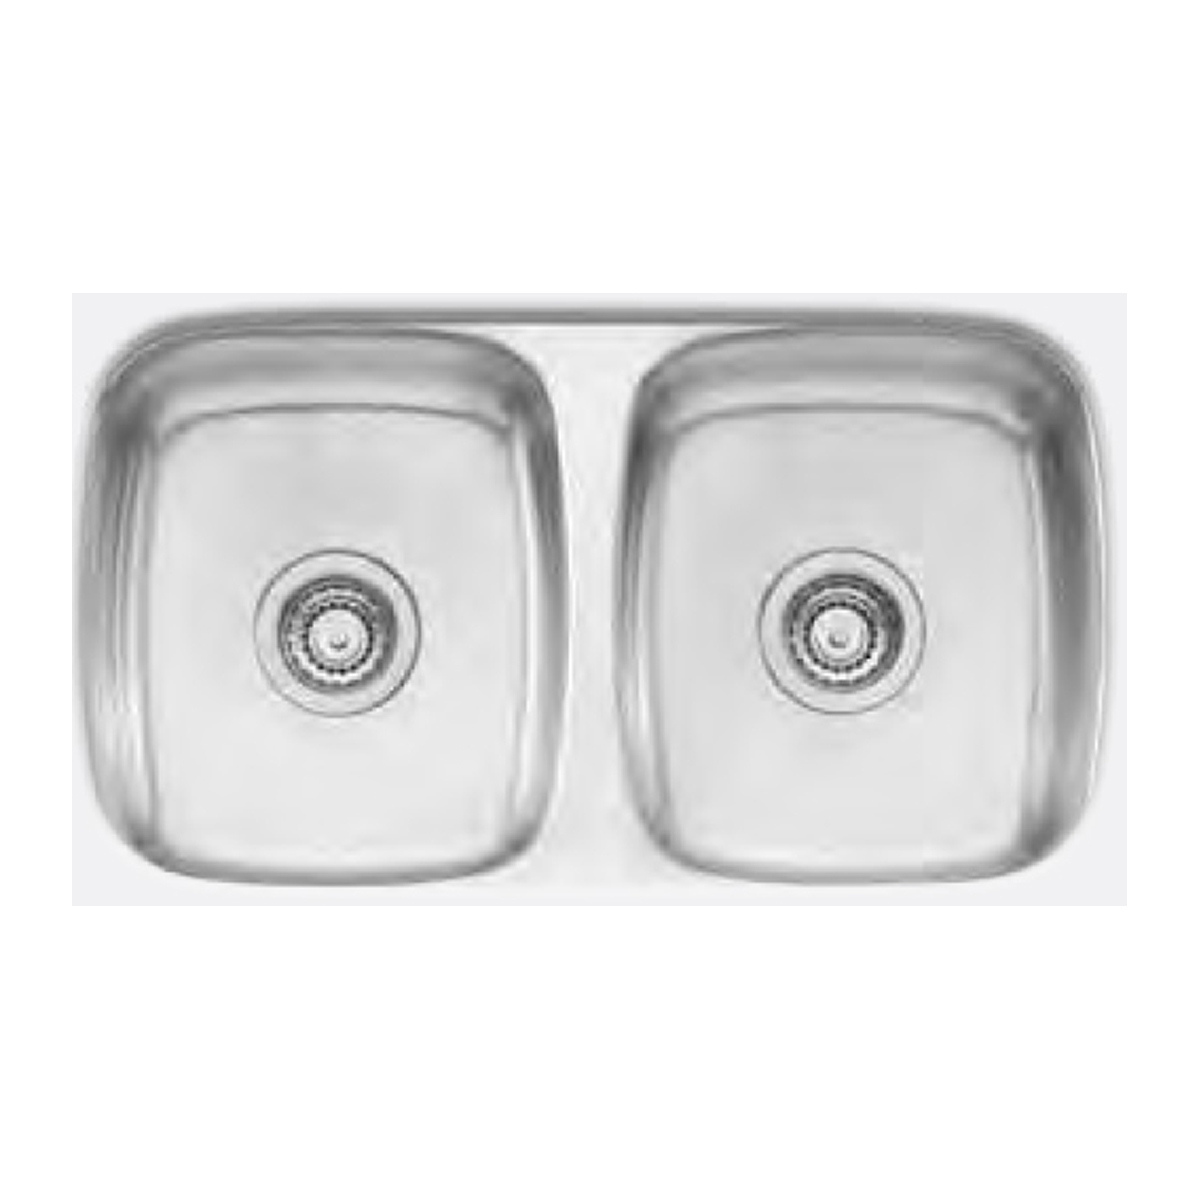 Oliveri Perle PL80U Double Bowl 750x455mm Deep Bowl Undermounted Sink 61423